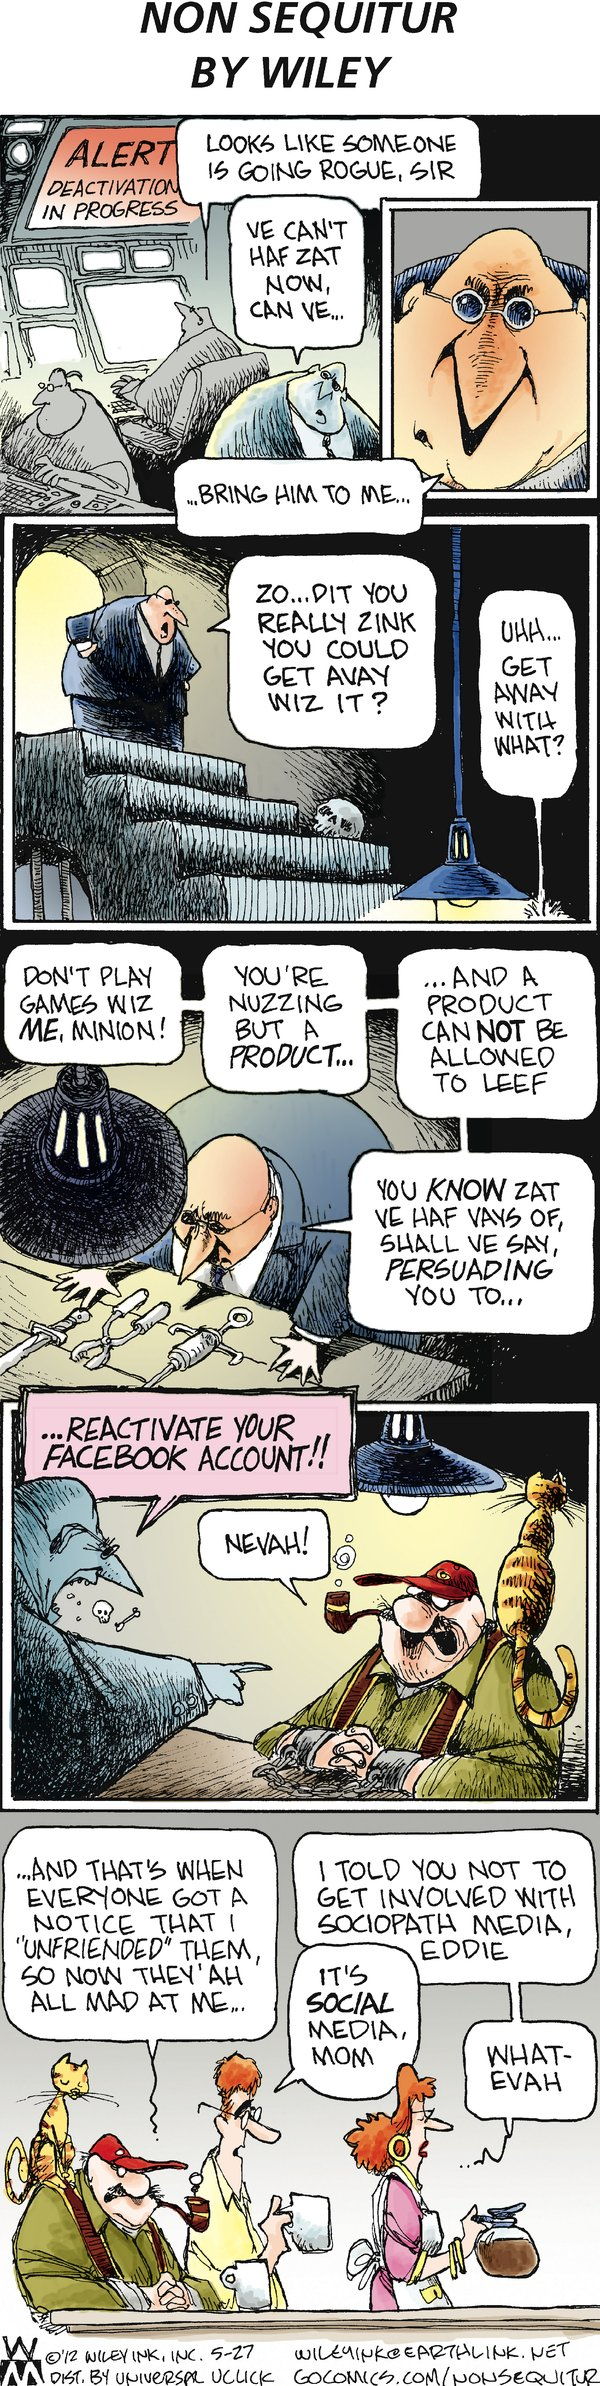 Non Sequitur Comic Strip for May 27, 2012